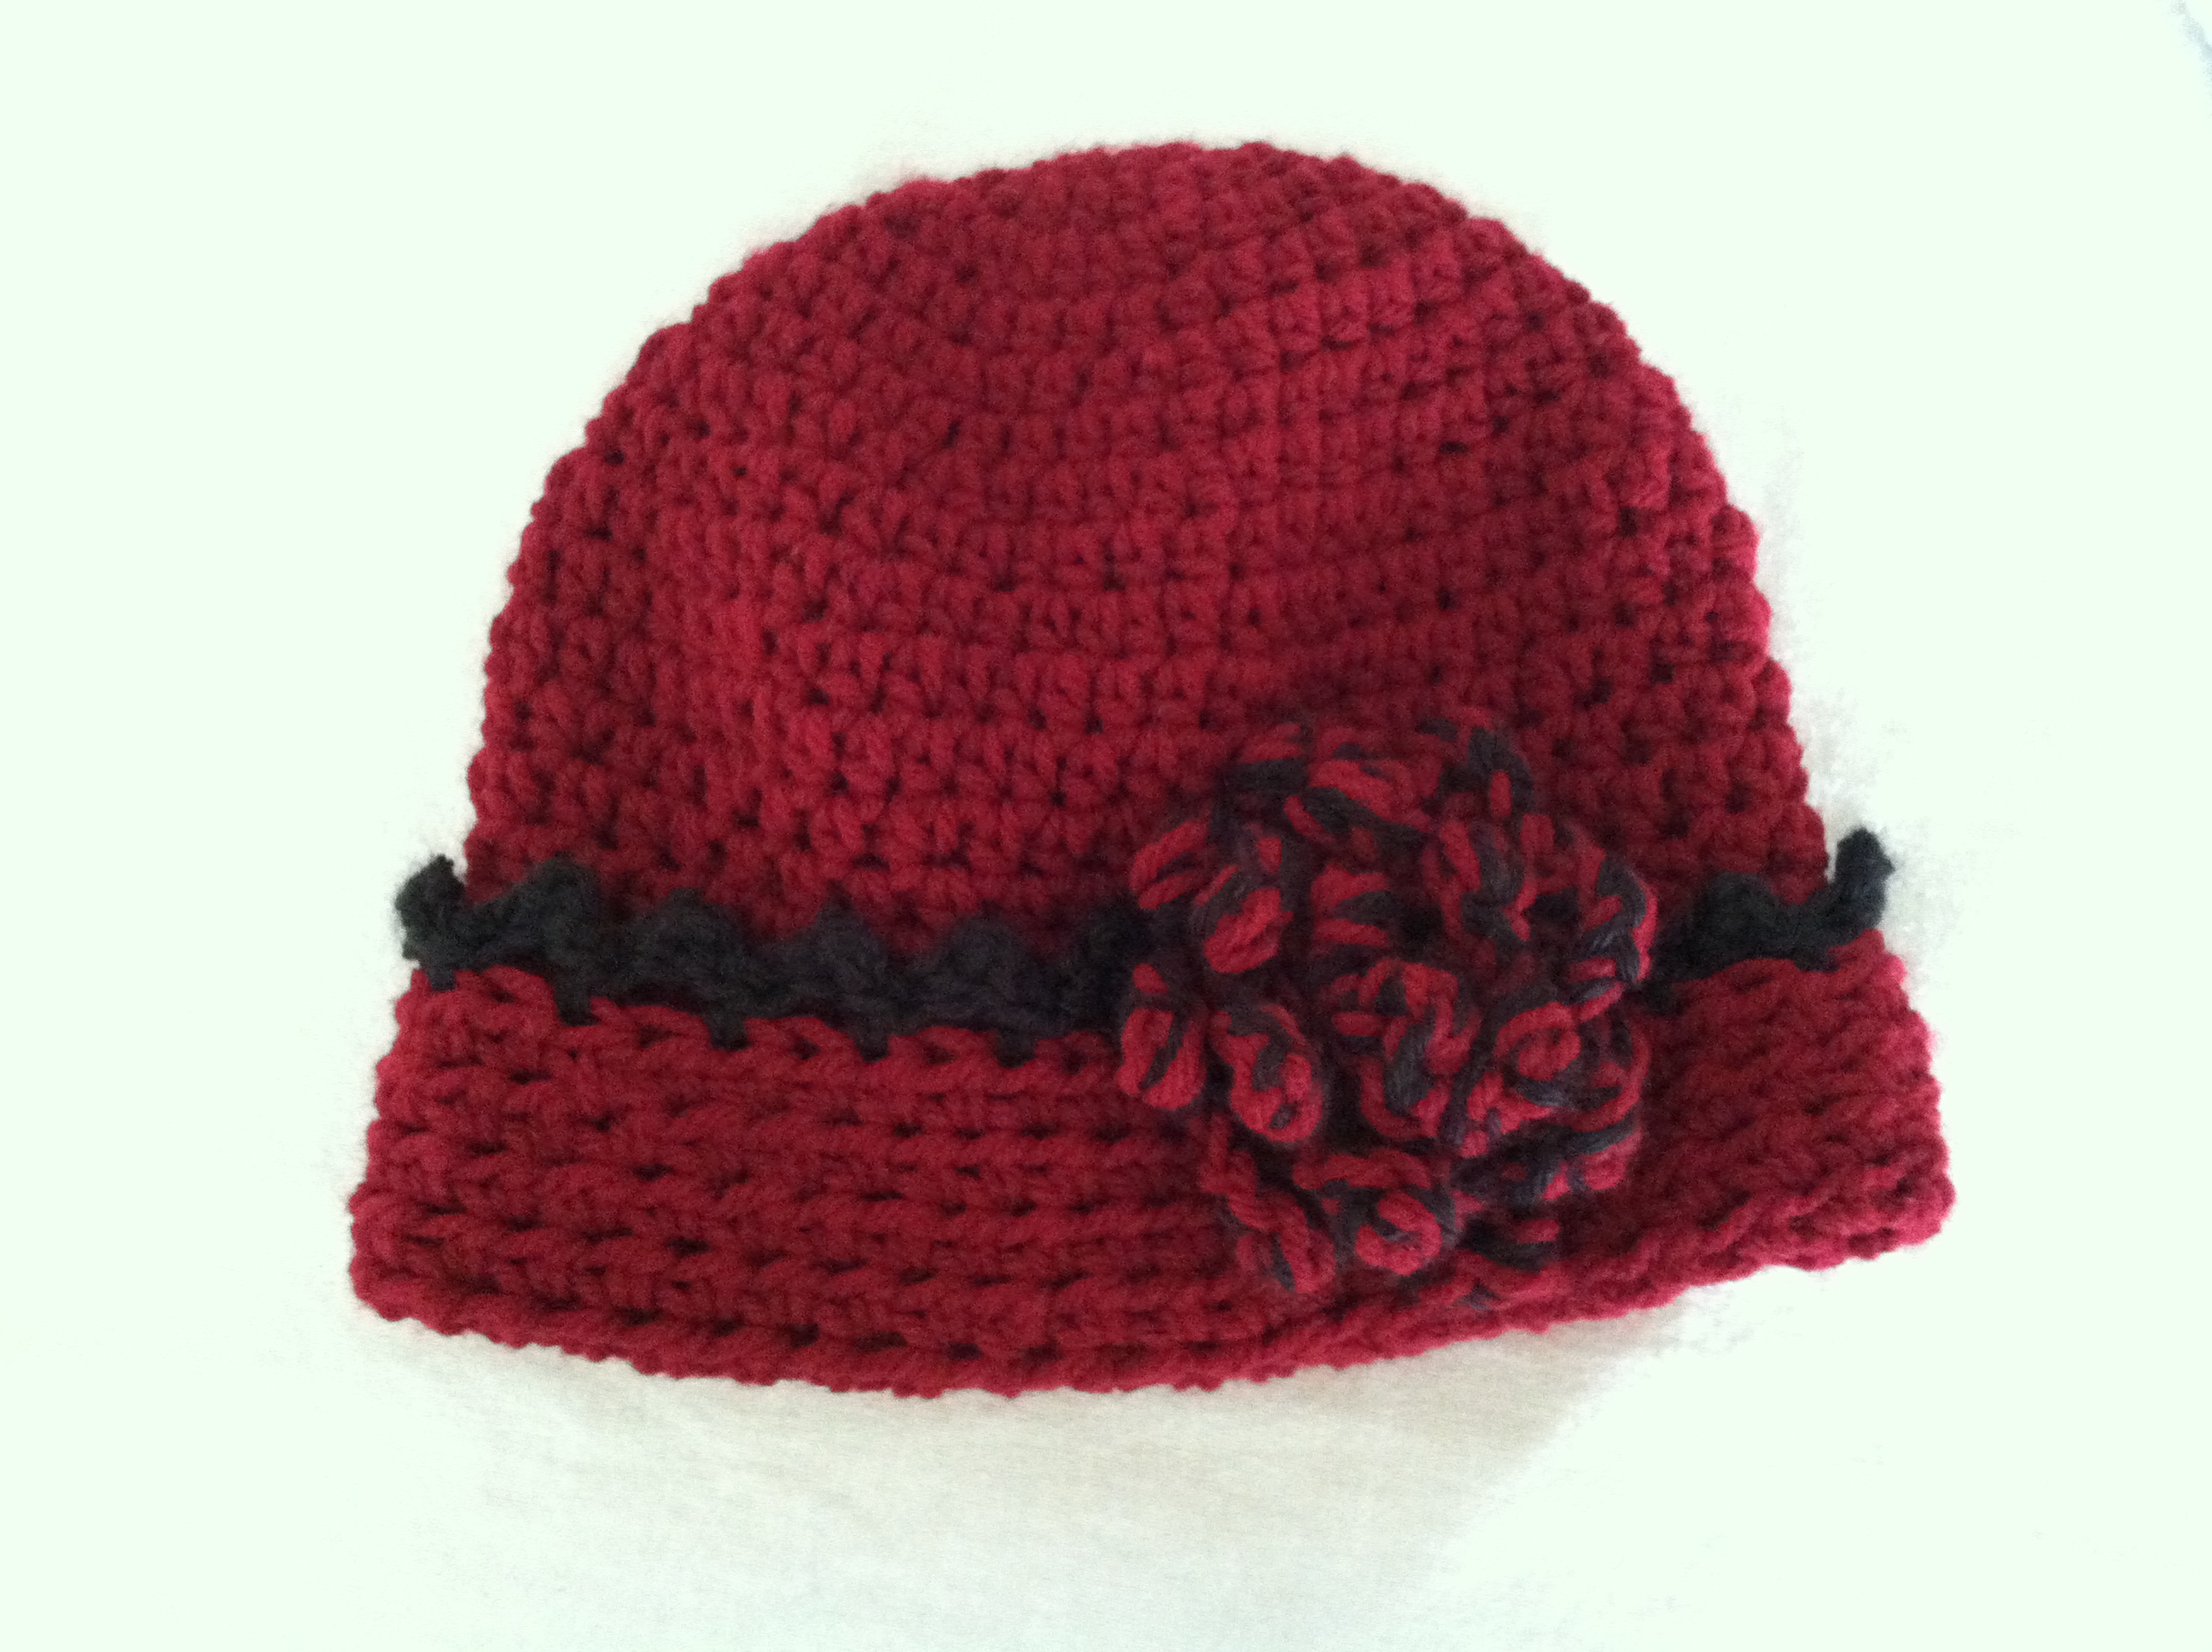 Red & Black hat with Cuff